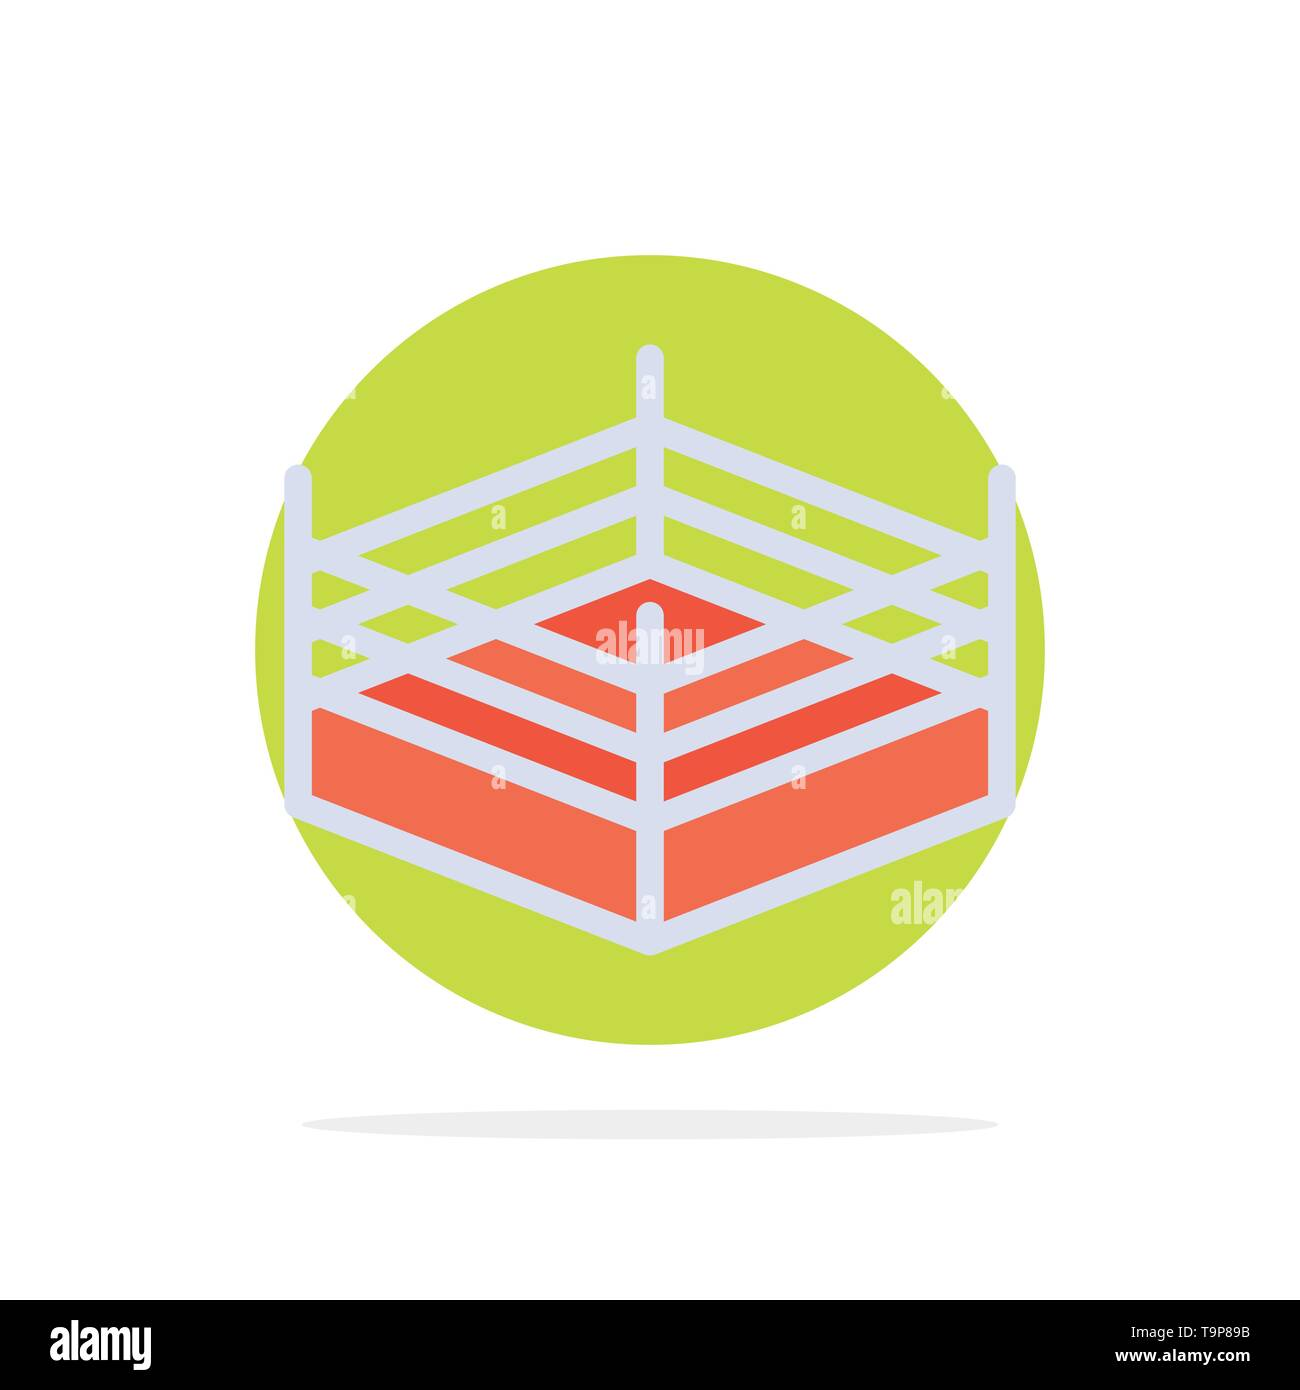 Boxing, Ring, Wrestling Abstract Circle Background Flat color Icon - Stock Image